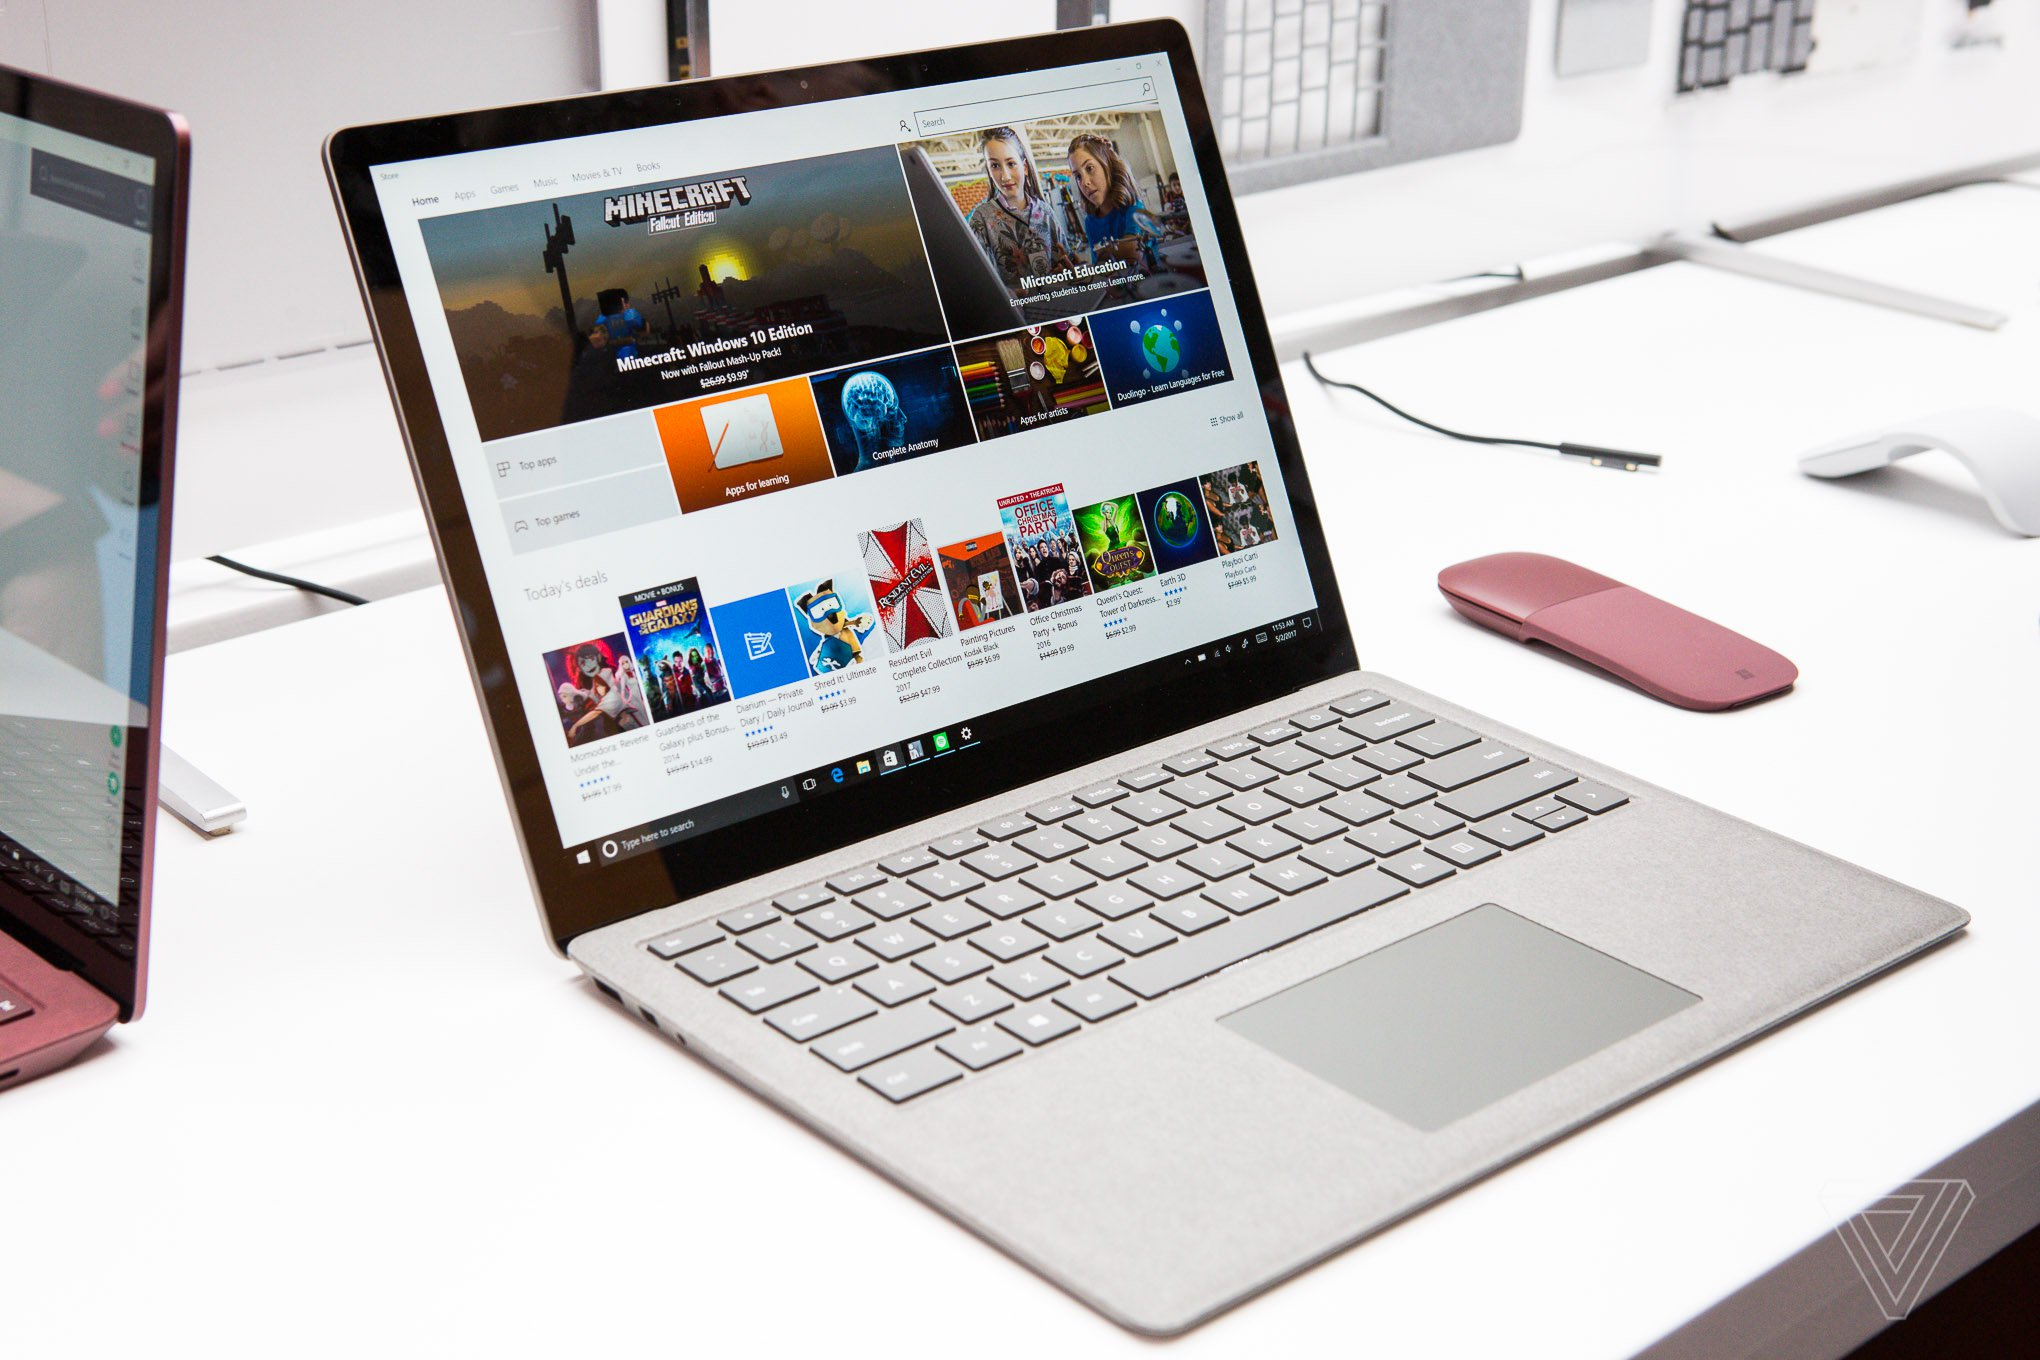 """Microsoft Surface 3 New Microsoft Surface """"A Shocker"""" """"Full Of Glue"""" Claims, 0 10 For Repairability"""